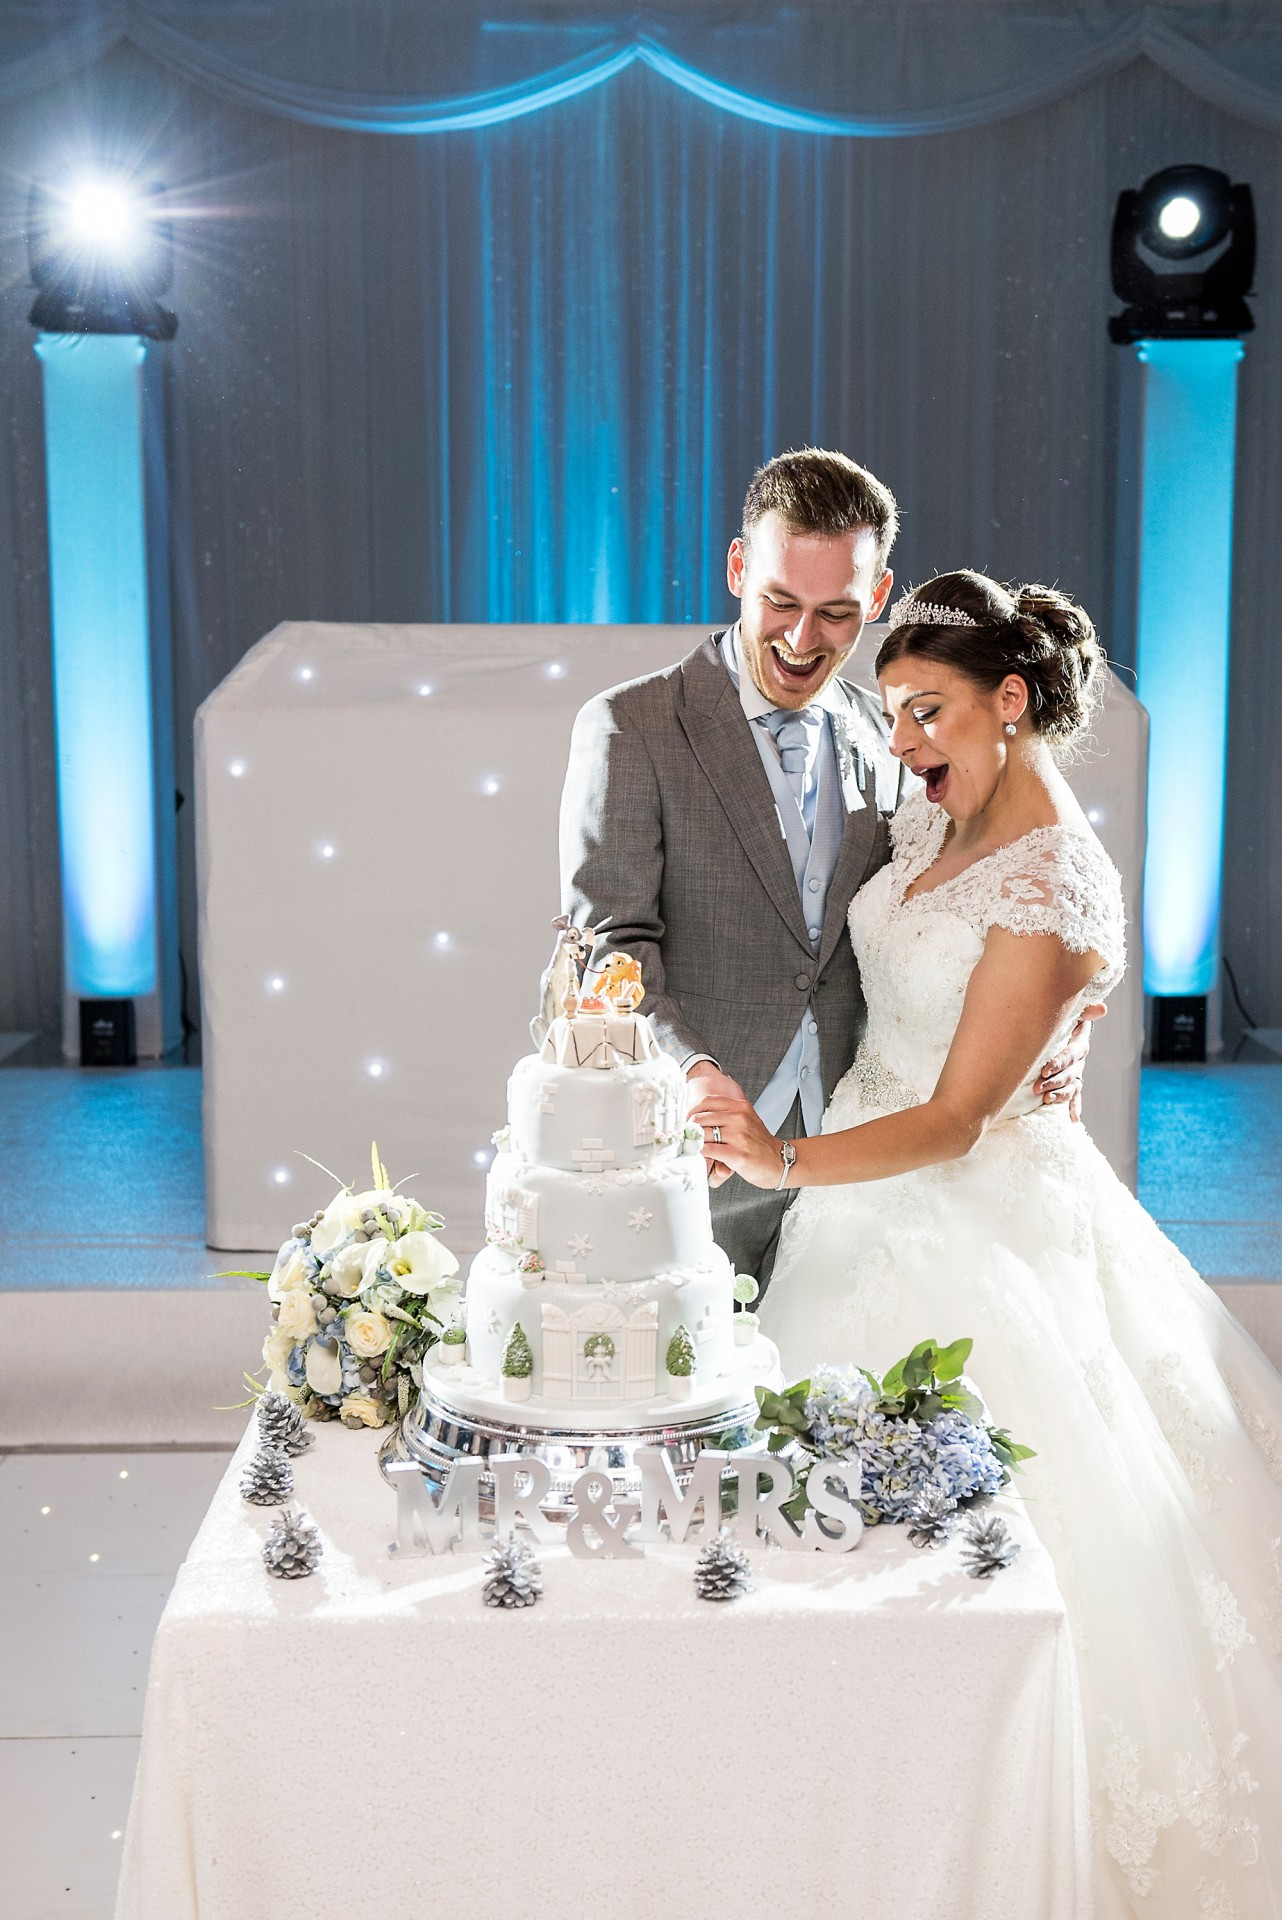 Luisa_Ronan_Winter-Wonderland-Wedding_038